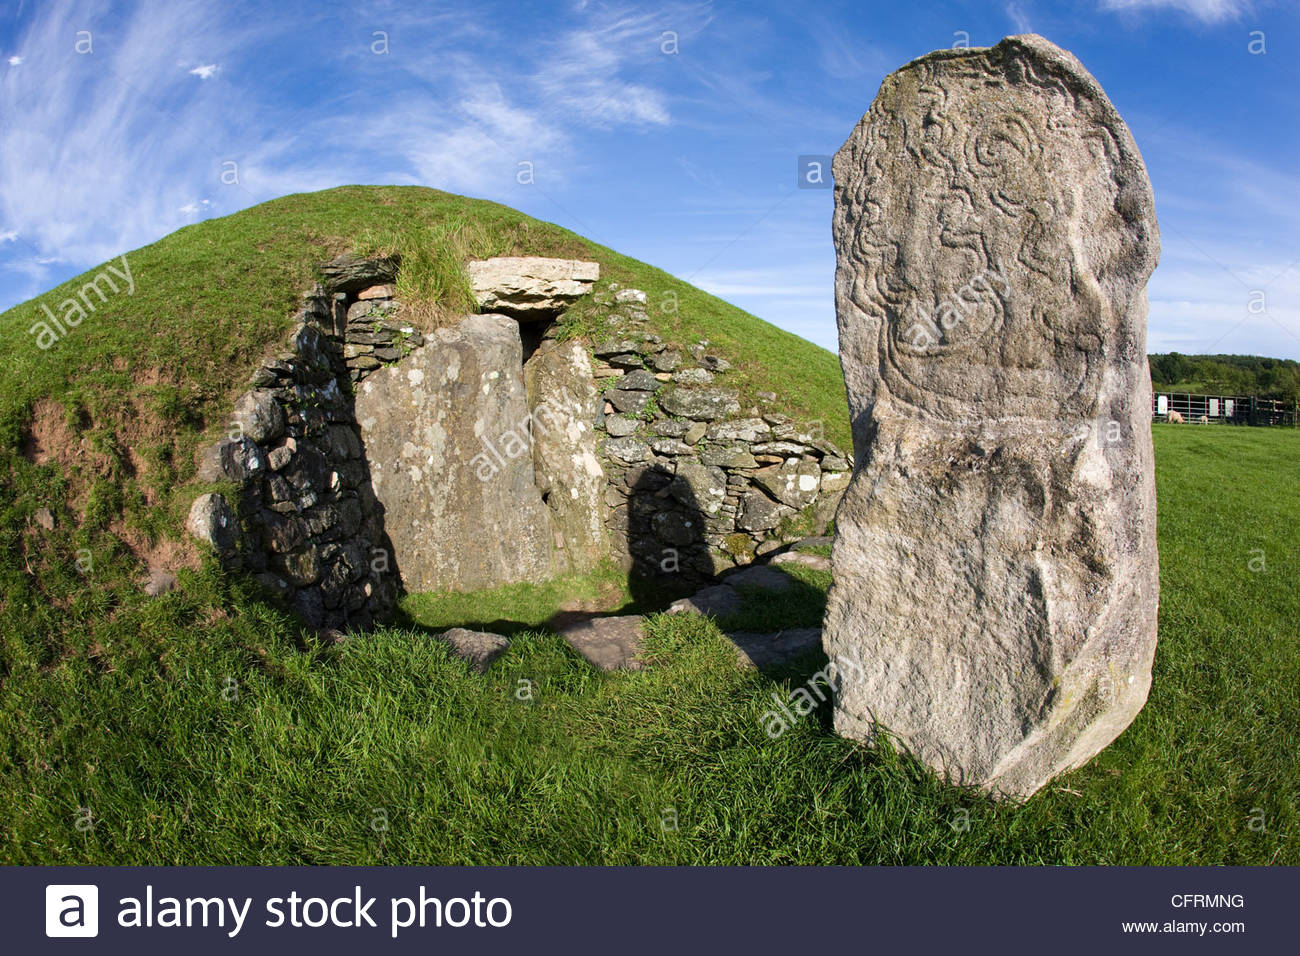 Bryn Celli Ddu North Wales, Bryn Celli Ddu a chambered neolithic burial mound and spiral ...